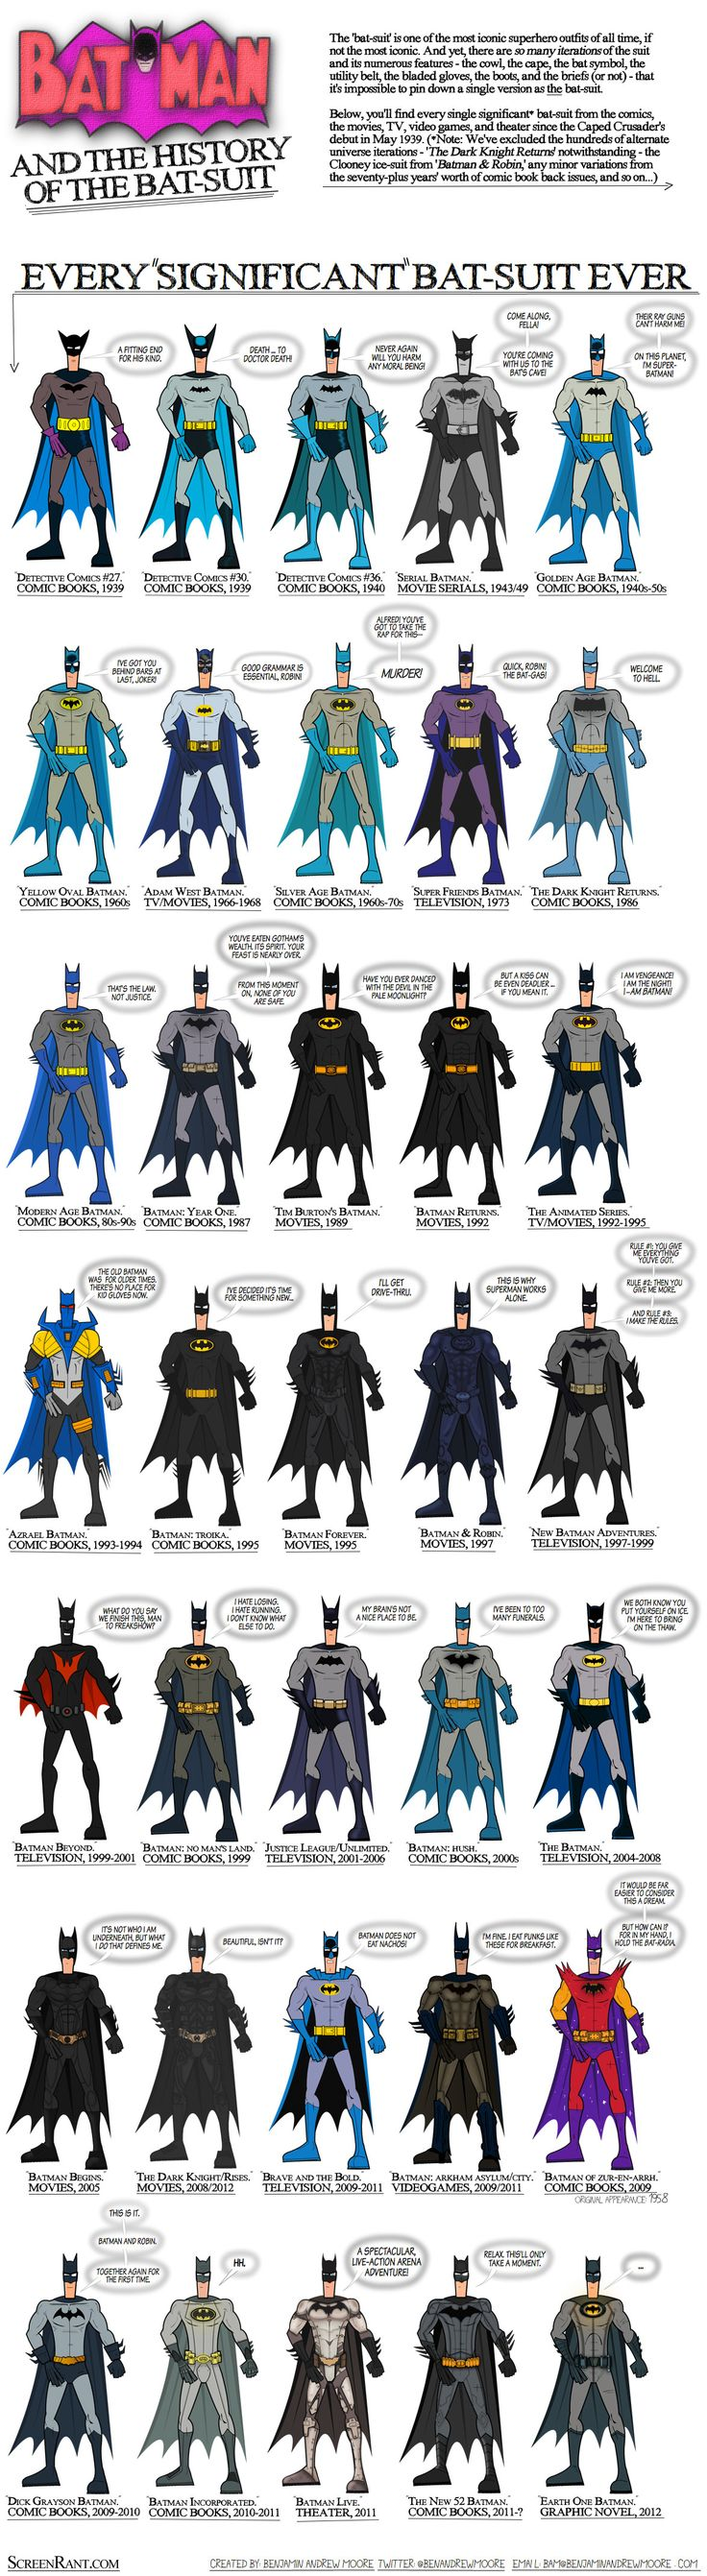 Every Significant Batman Suit Ever #infographic